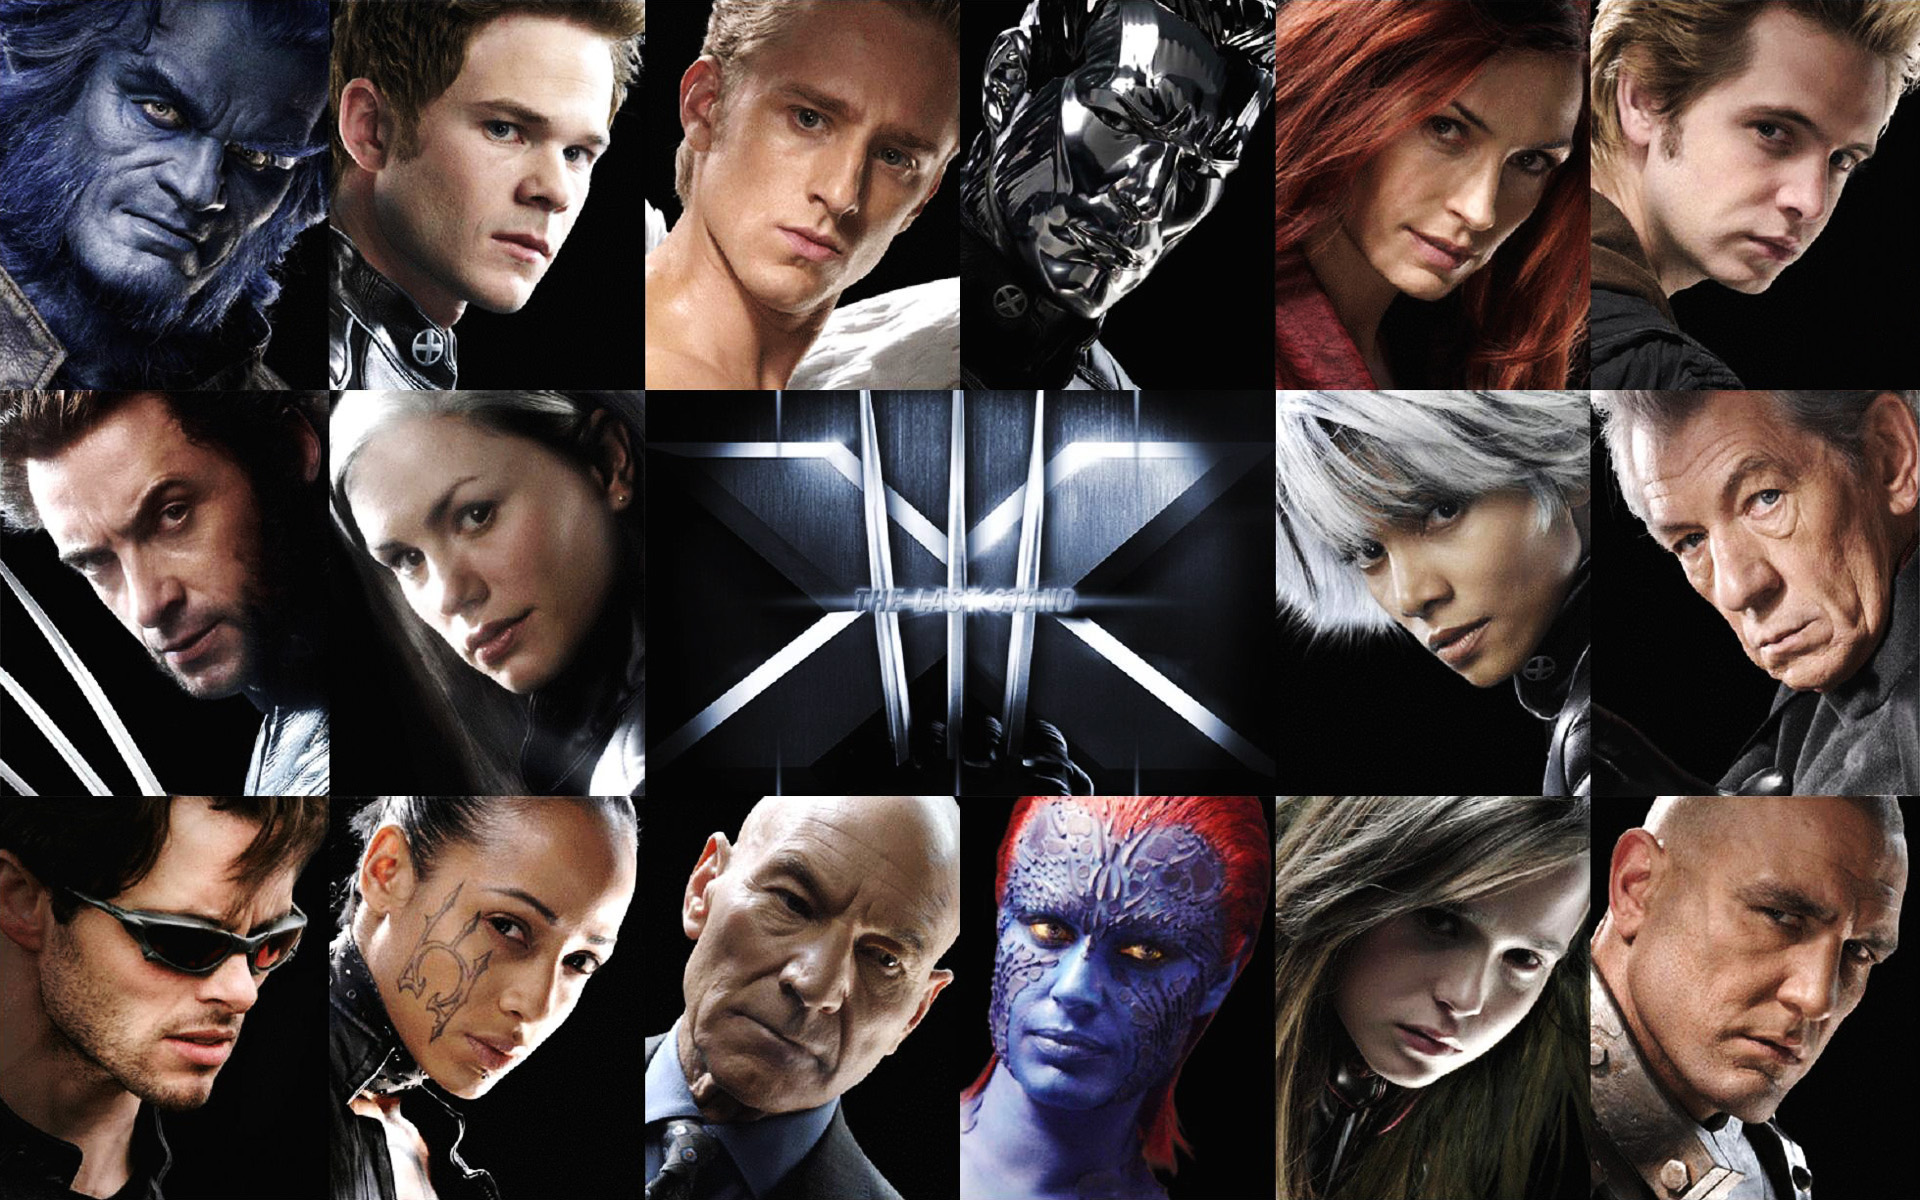 x-men last stand cast faces 1920×1200 – Digital Citizen